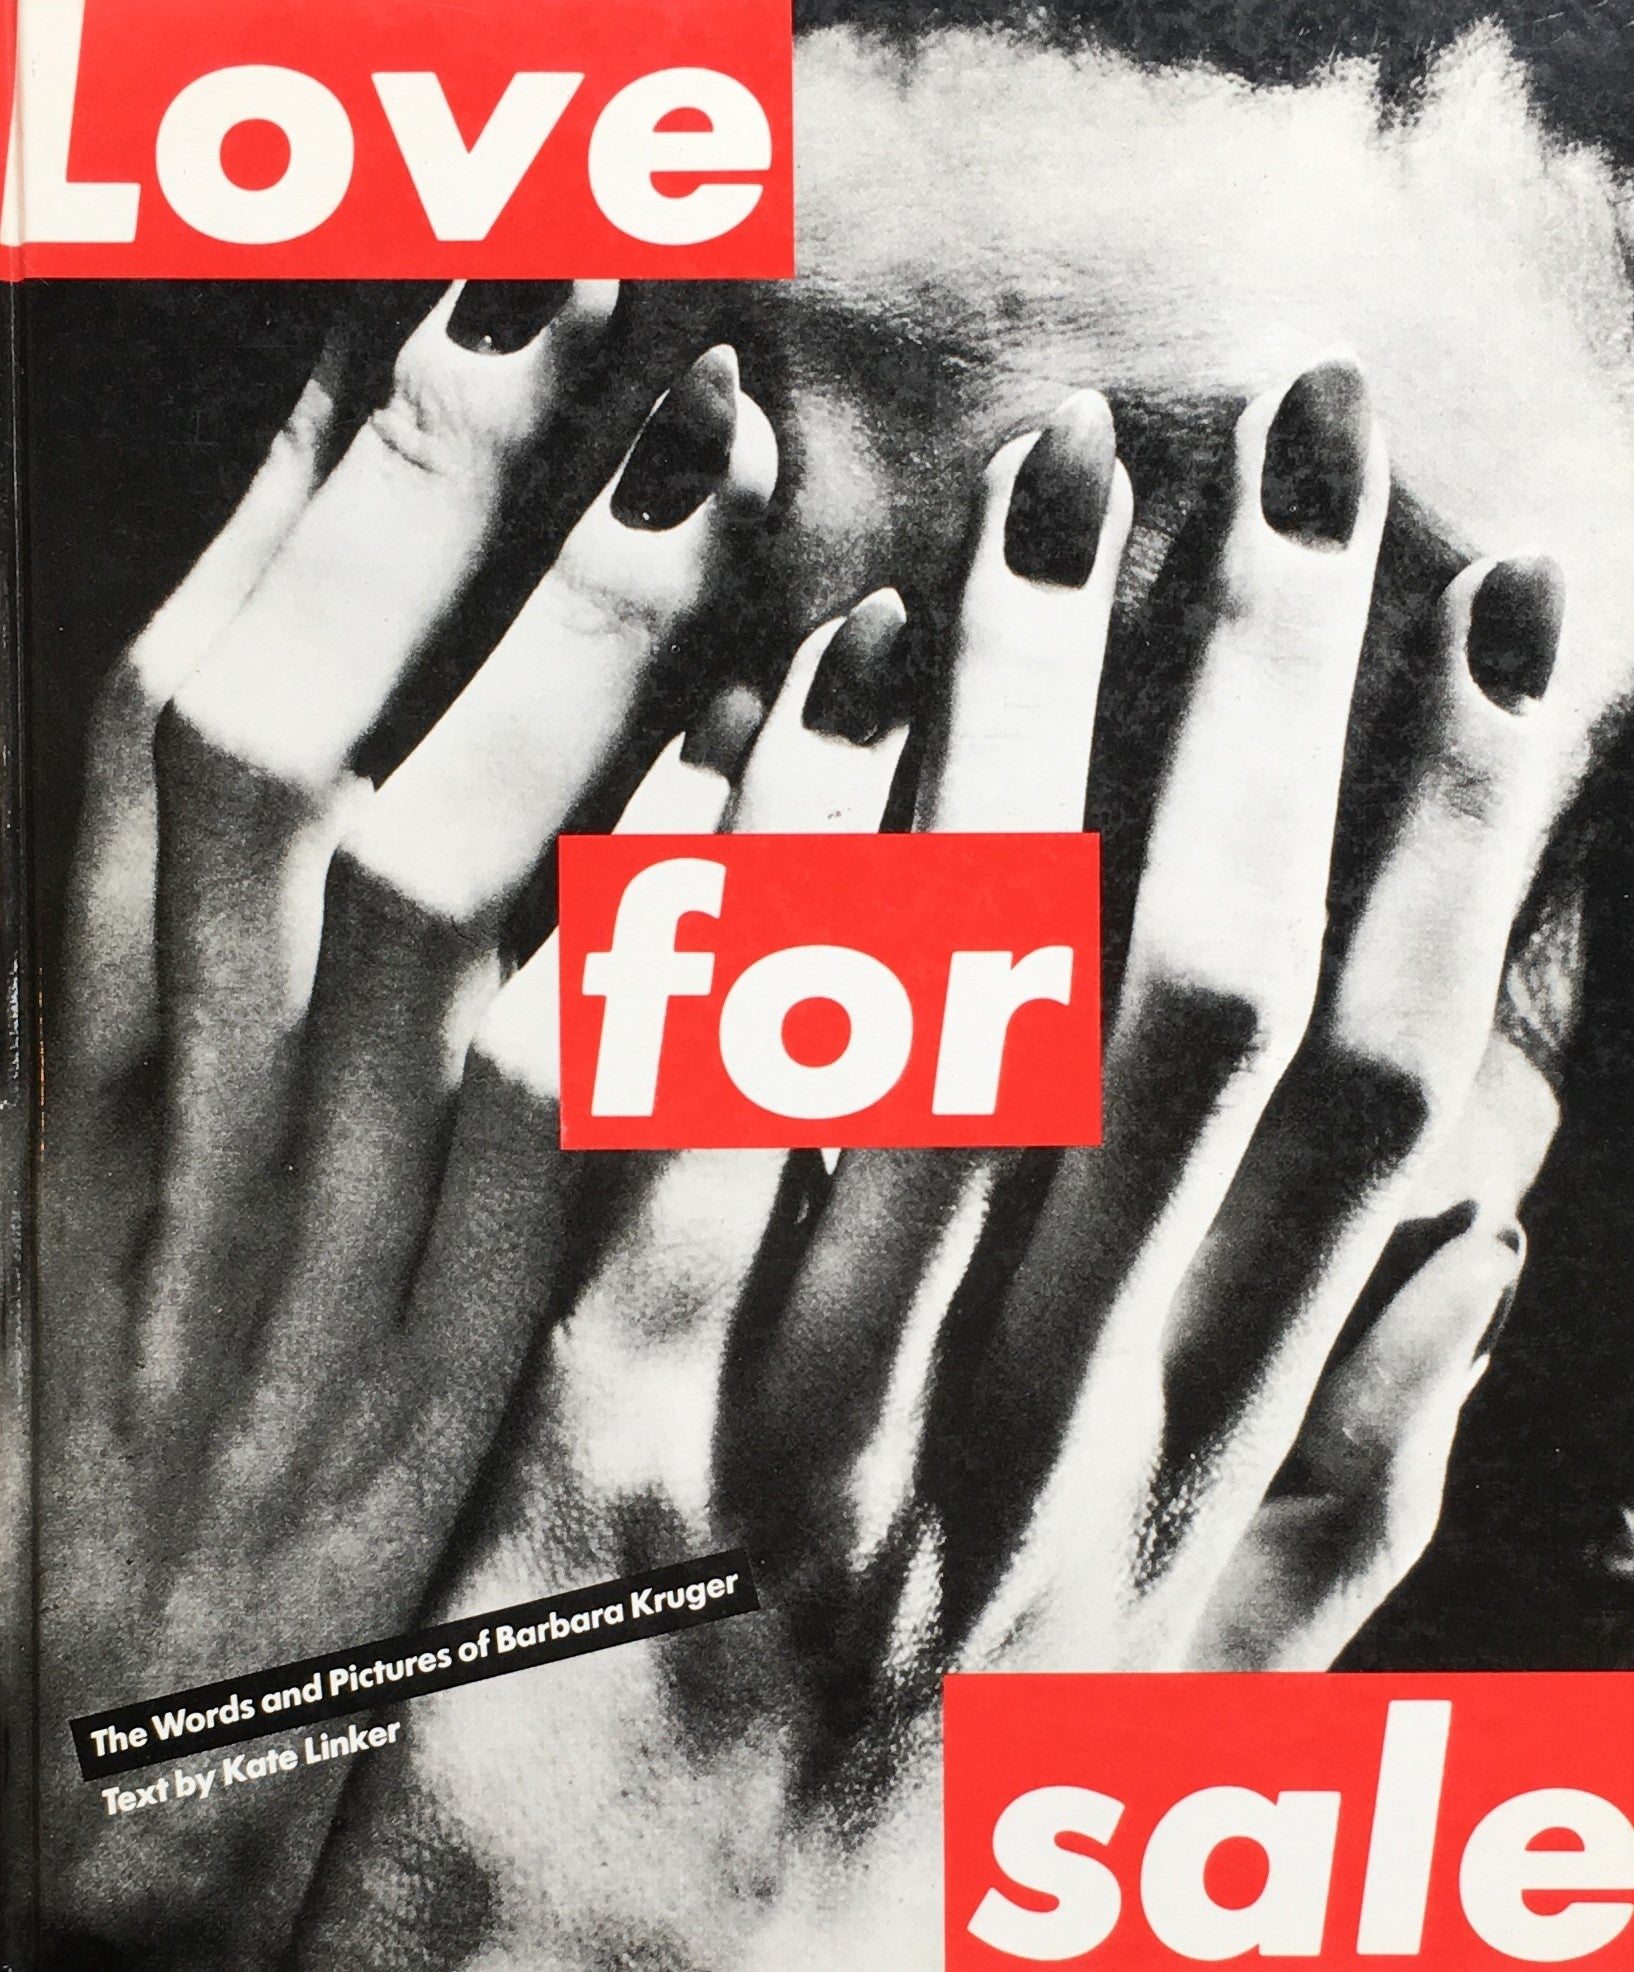 バーバラ・クルーガー Love For sale The Words and Poctures of Barbara Kruger  Text by Kate Linker